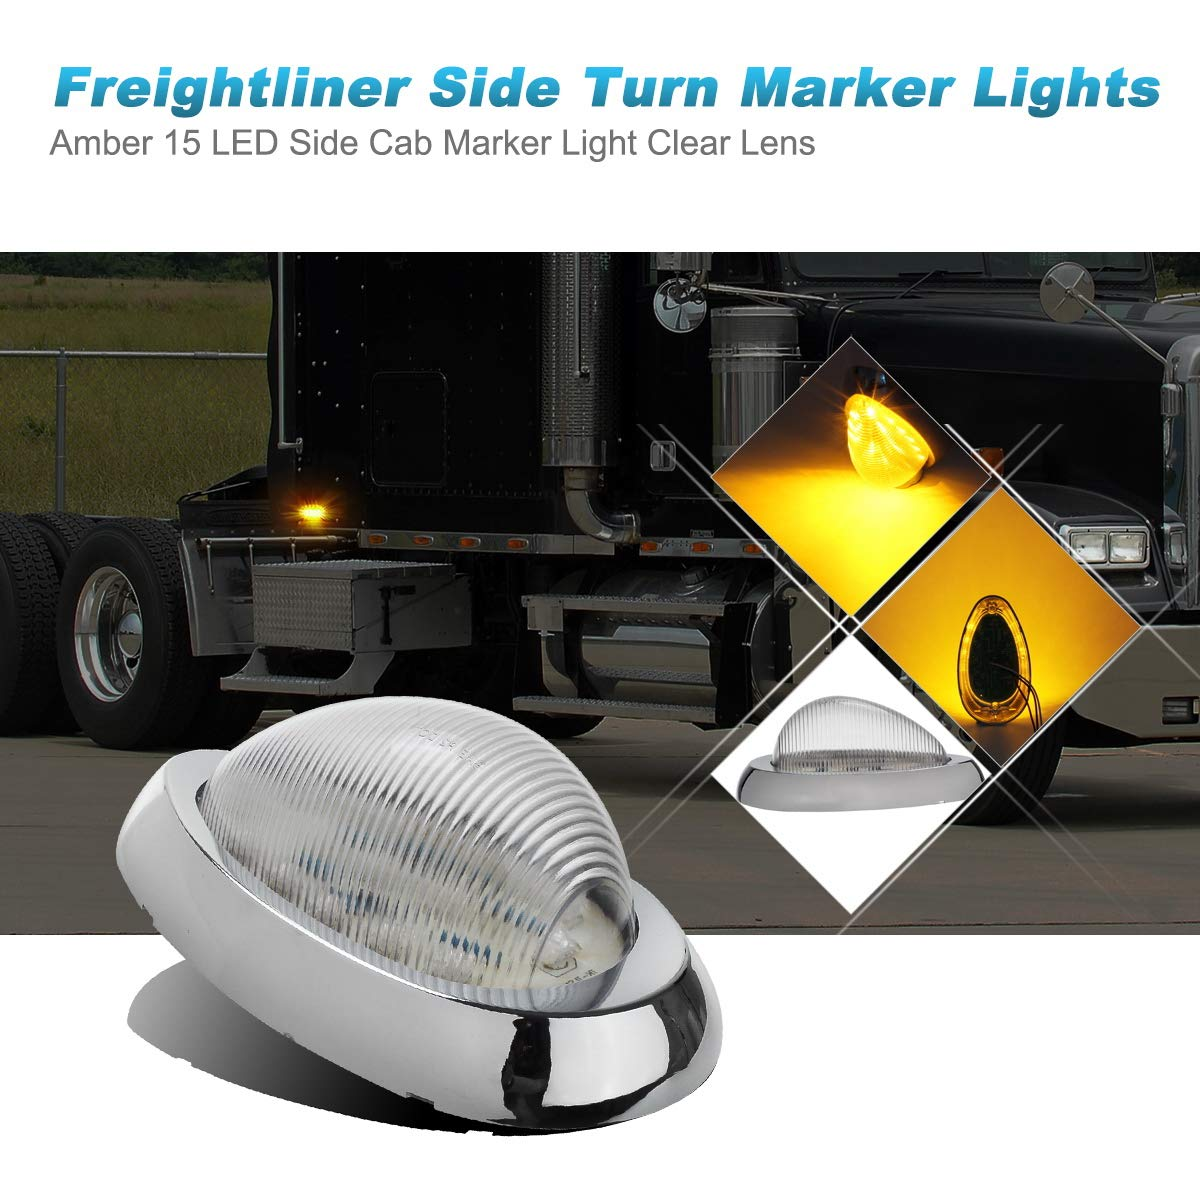 Partsam 2X Clear//Amber 5-7//8 Led Side Marker Lamp Turn Signal Teardrop Light 15LED Sealed Replacement for Freightliner Century//Columbia Amber LED Side Marker Signal Light w Chrome Bezel Clear Lens